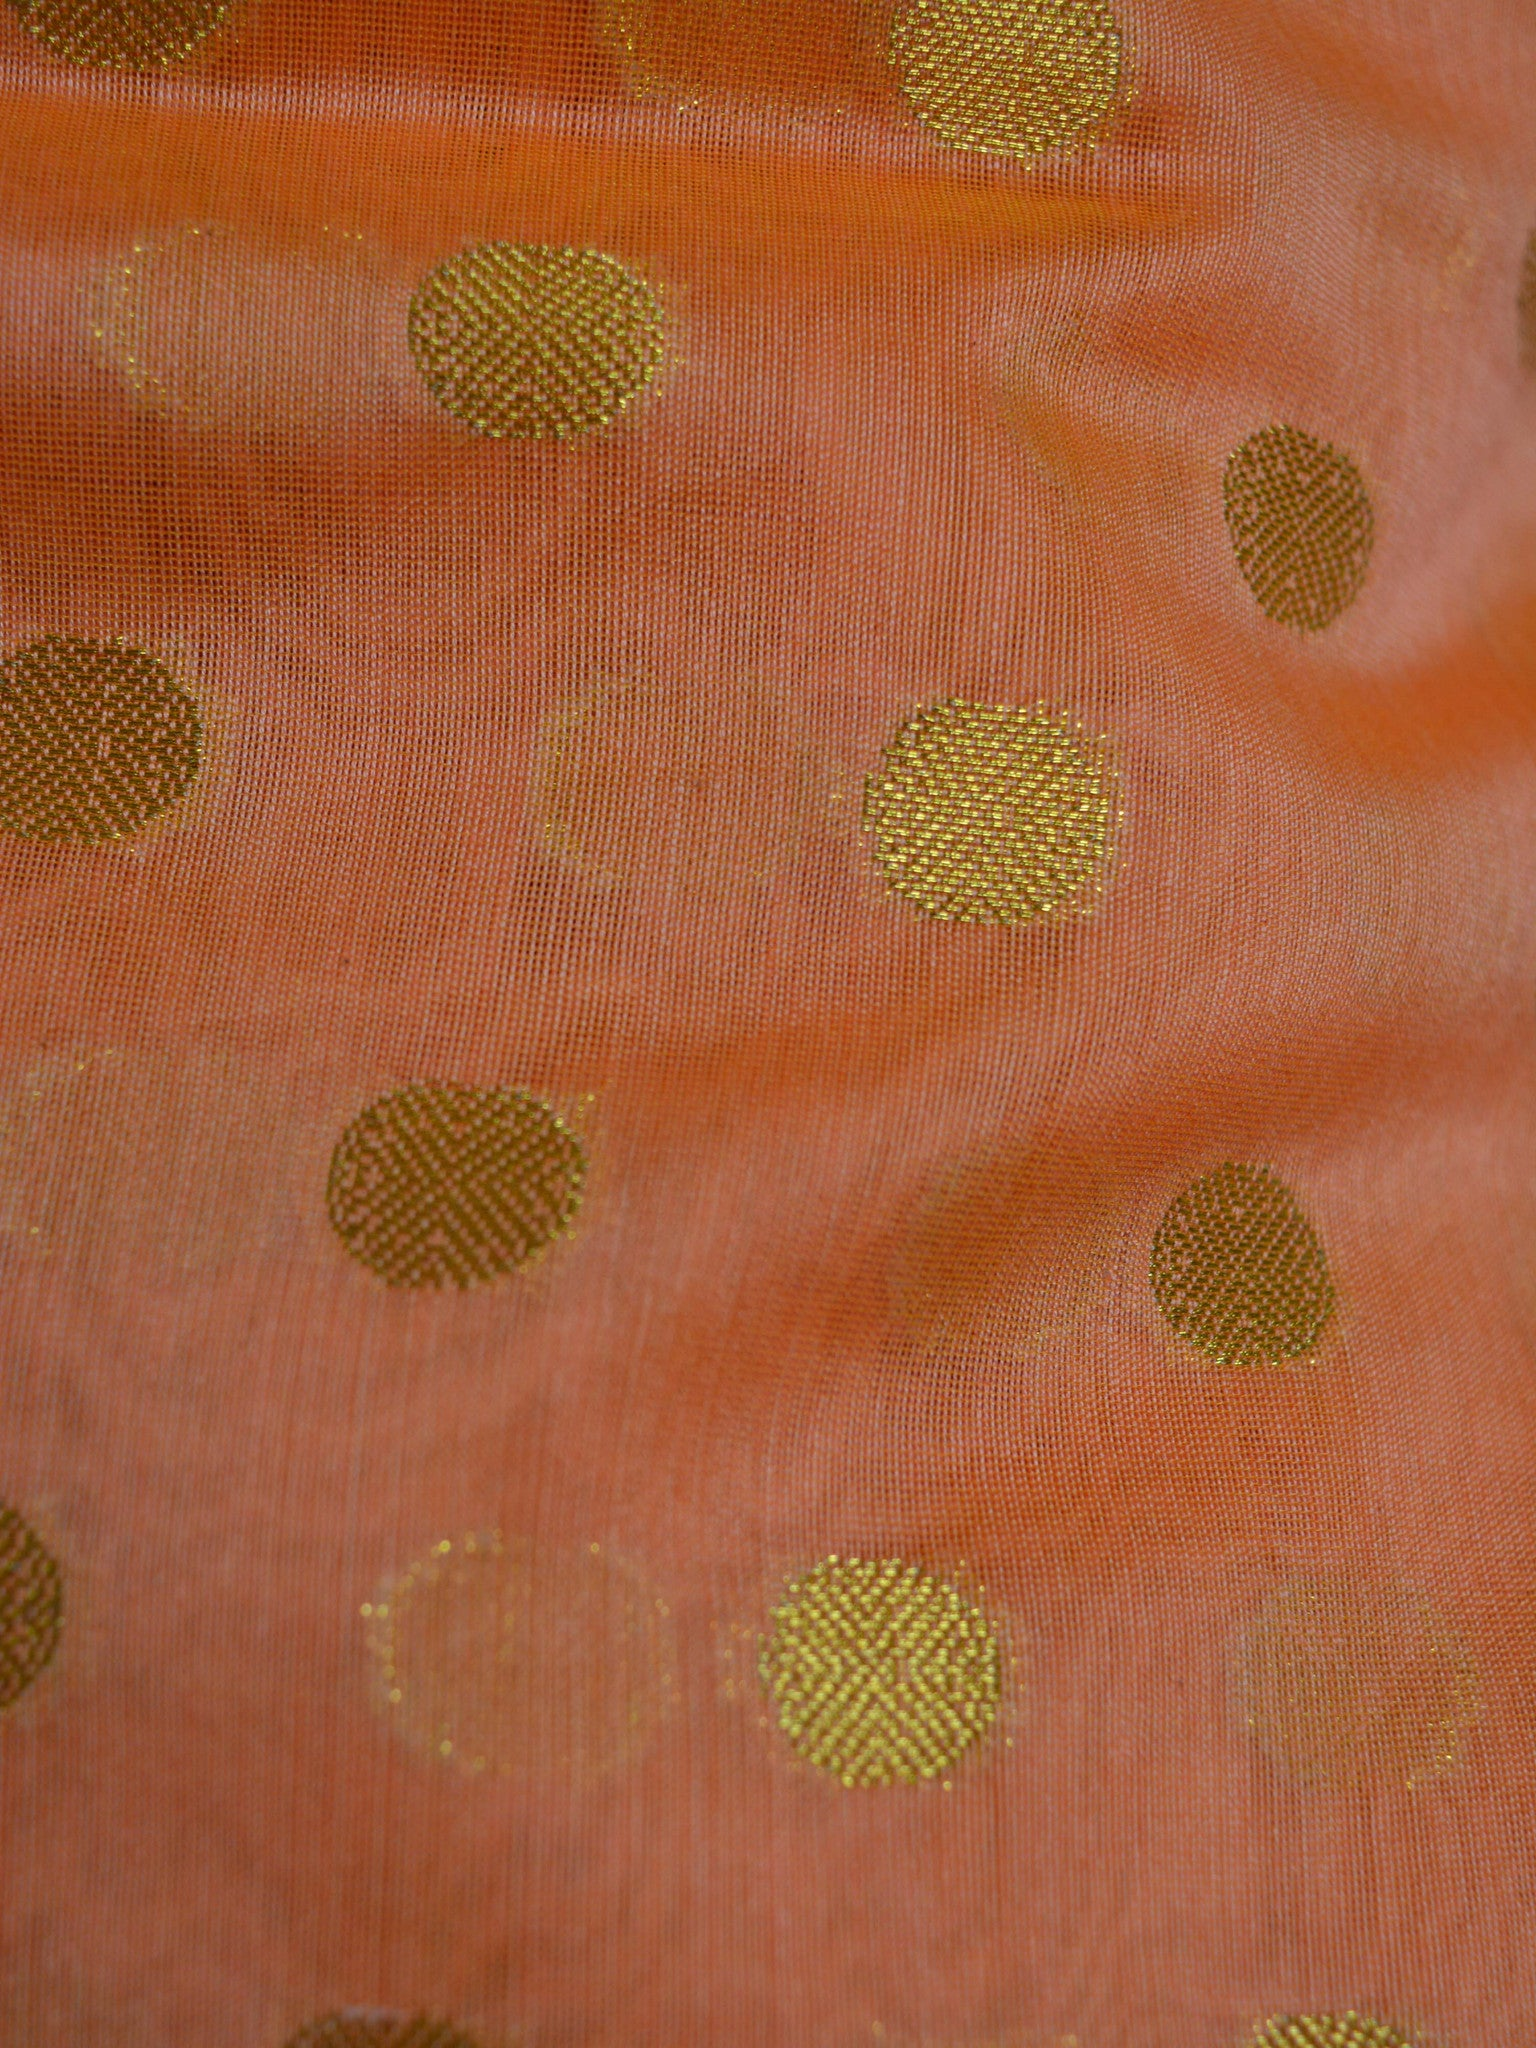 Banarasee Chanderi Cotton Salwar Kameez Zari Polka Dot Buti Design Fabric & Rust Jaal Dupatta-Orange